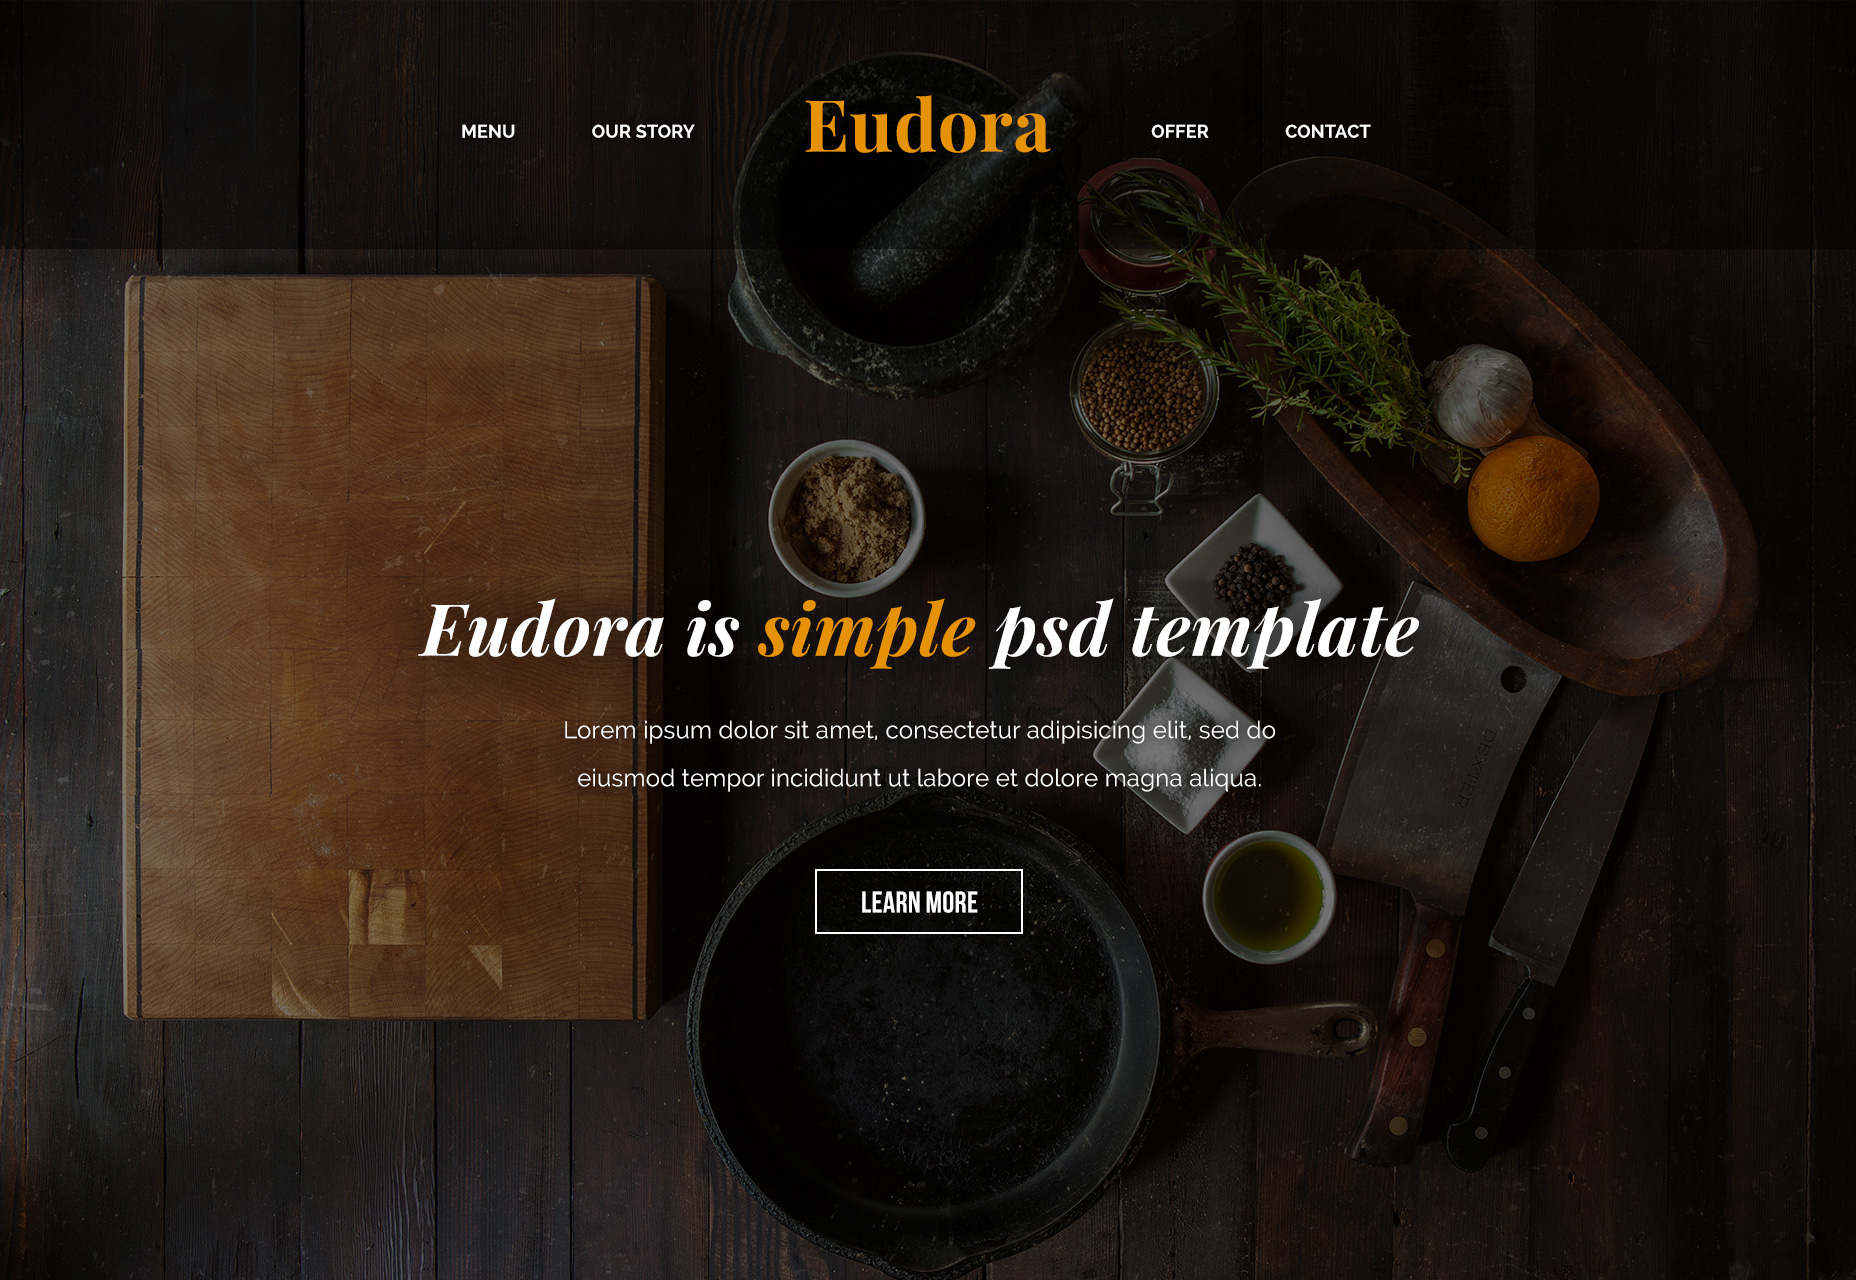 eudora-food-related-psd-web-template